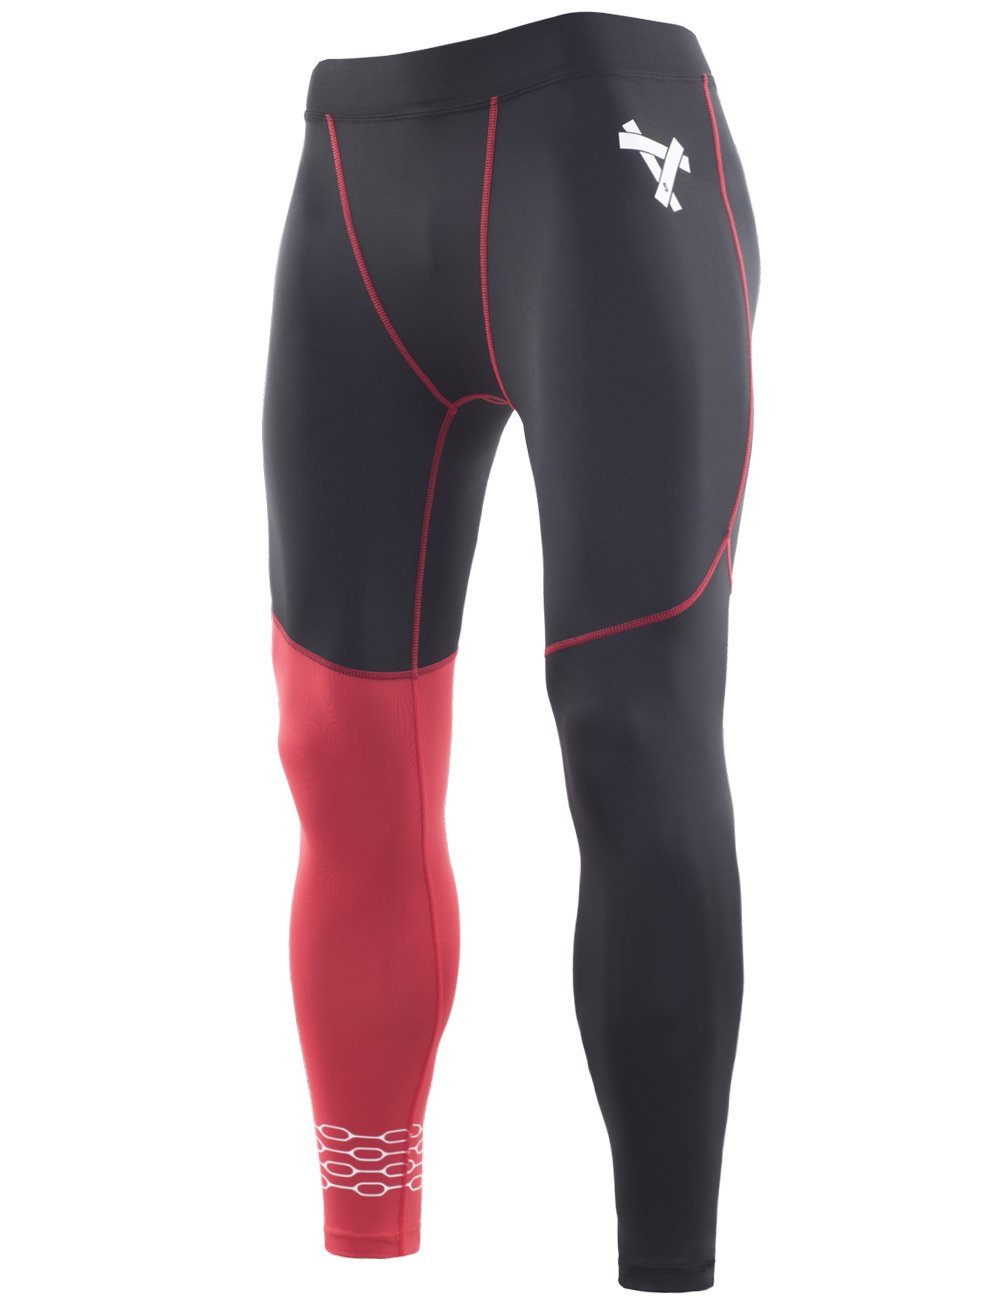 Lavento Men's Compression Pants Cool Dry Running